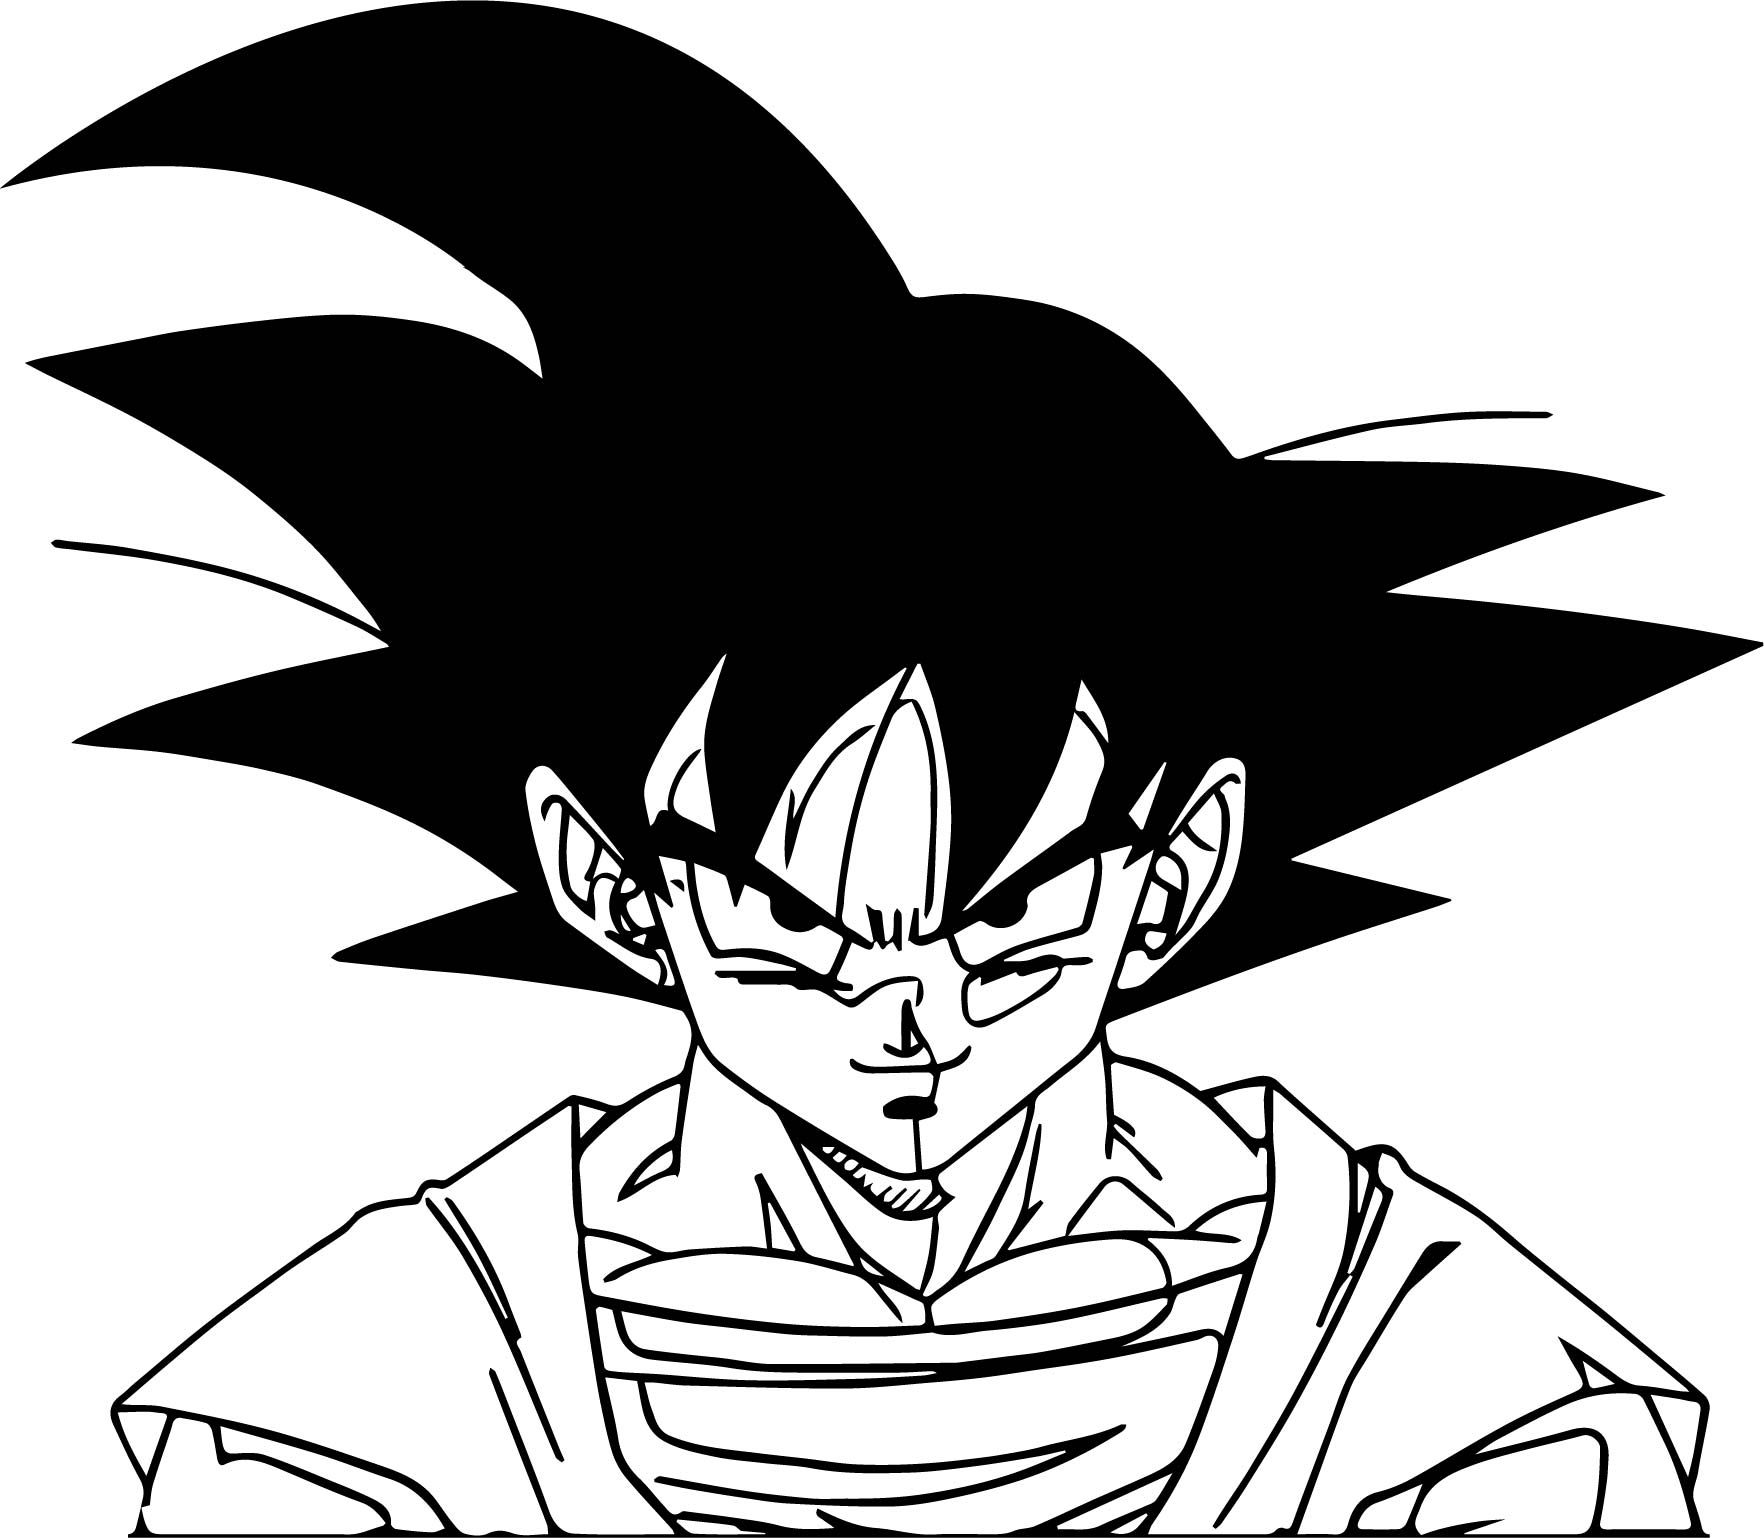 Cool Goku Smile Face Coloring Page Coloring Pages Smile Face Goku